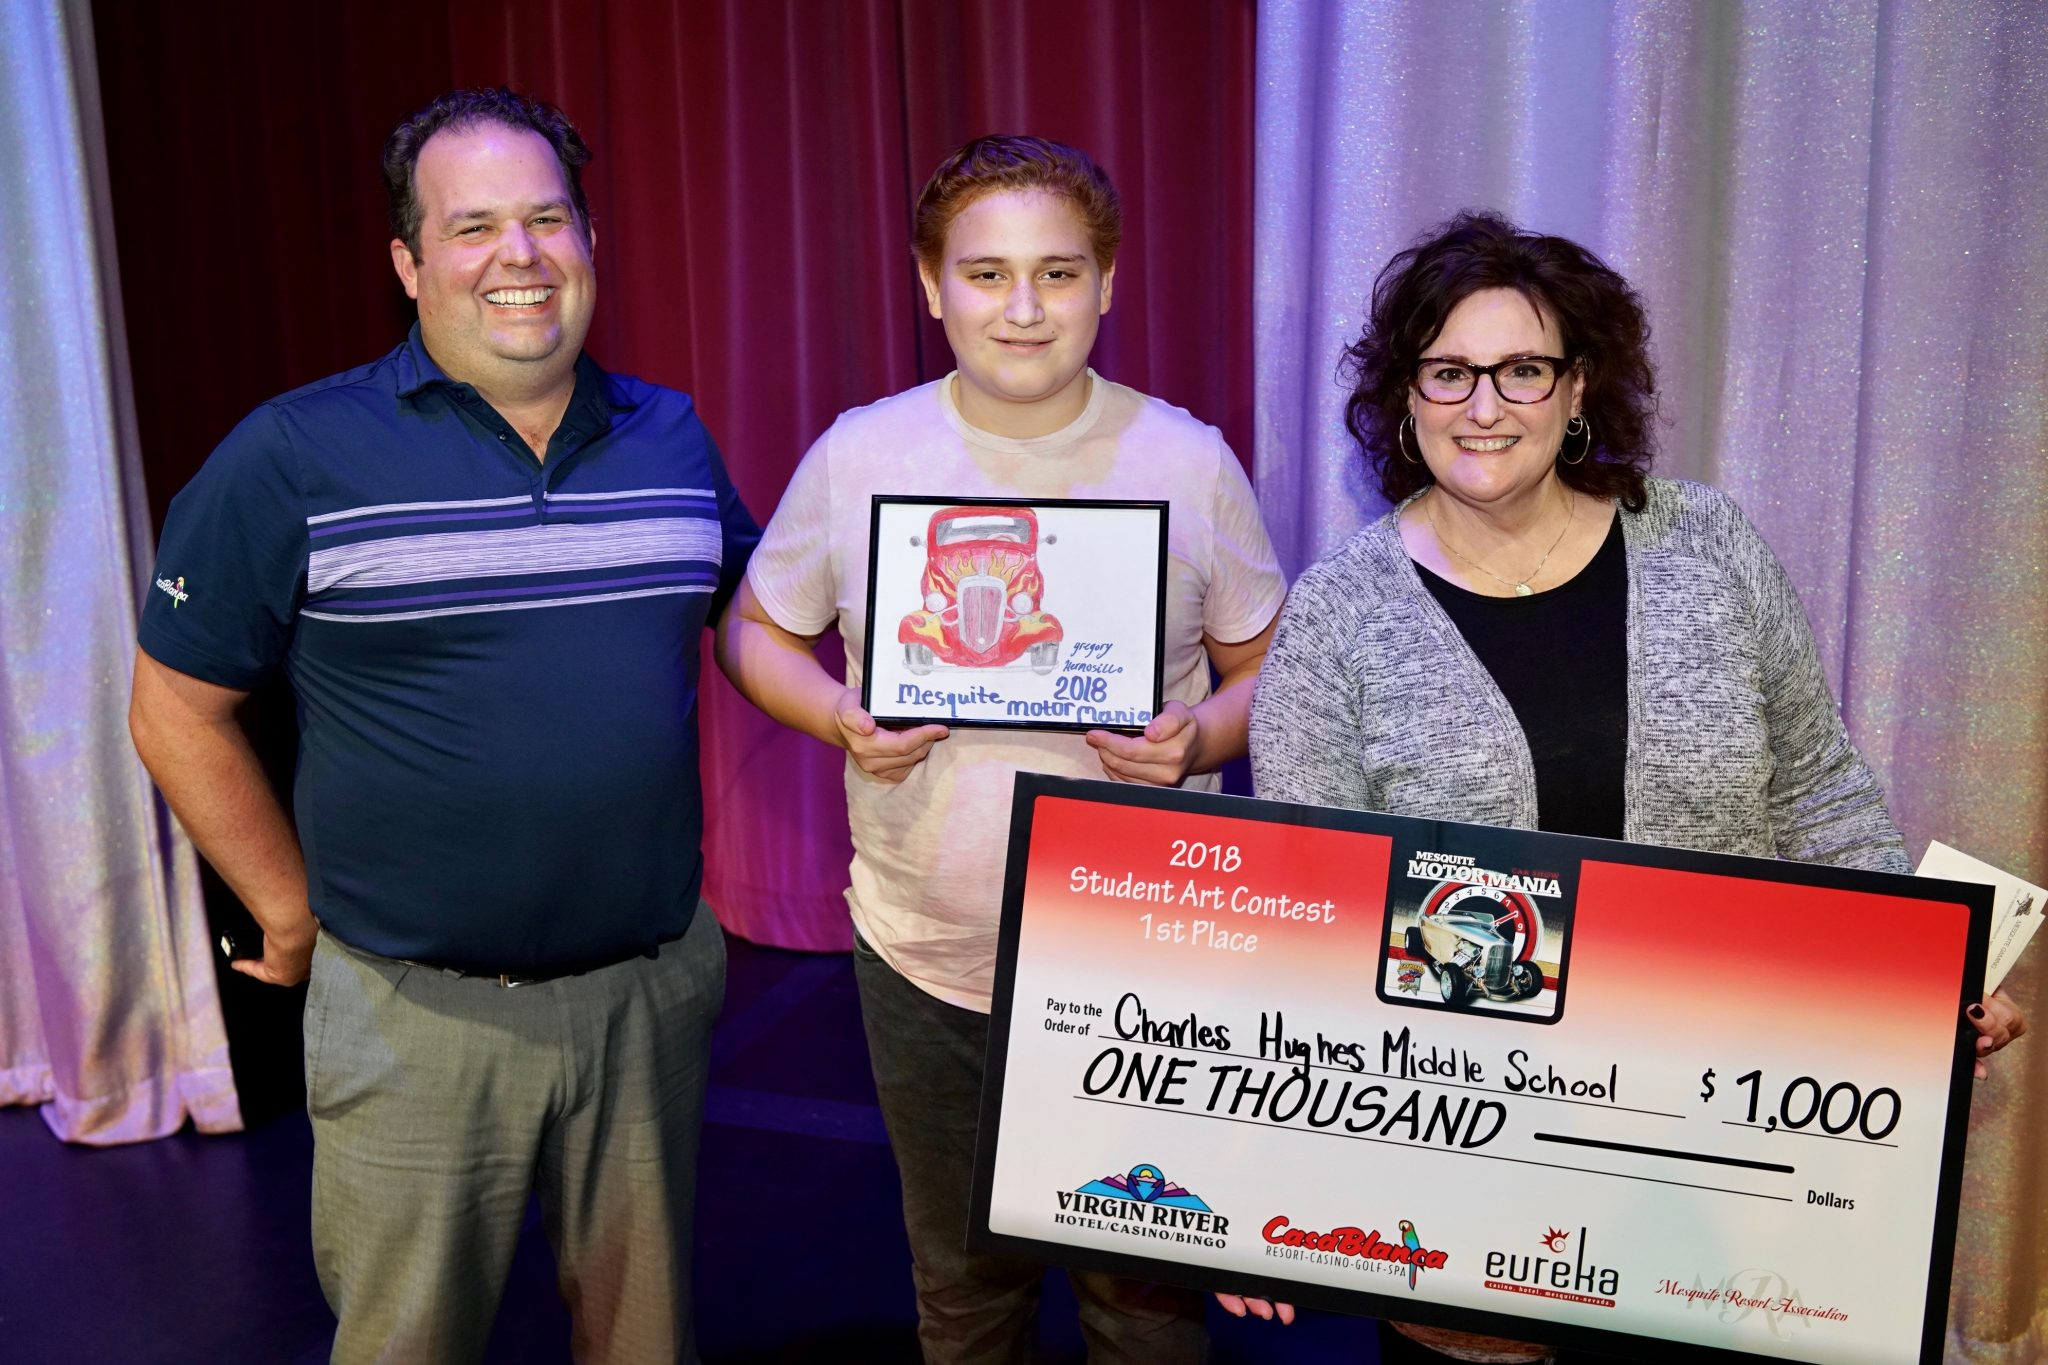 Mesquite Gaming donates $1,000 to Charles A. Hughes Middle School  during Motor Mania Student Art Contest